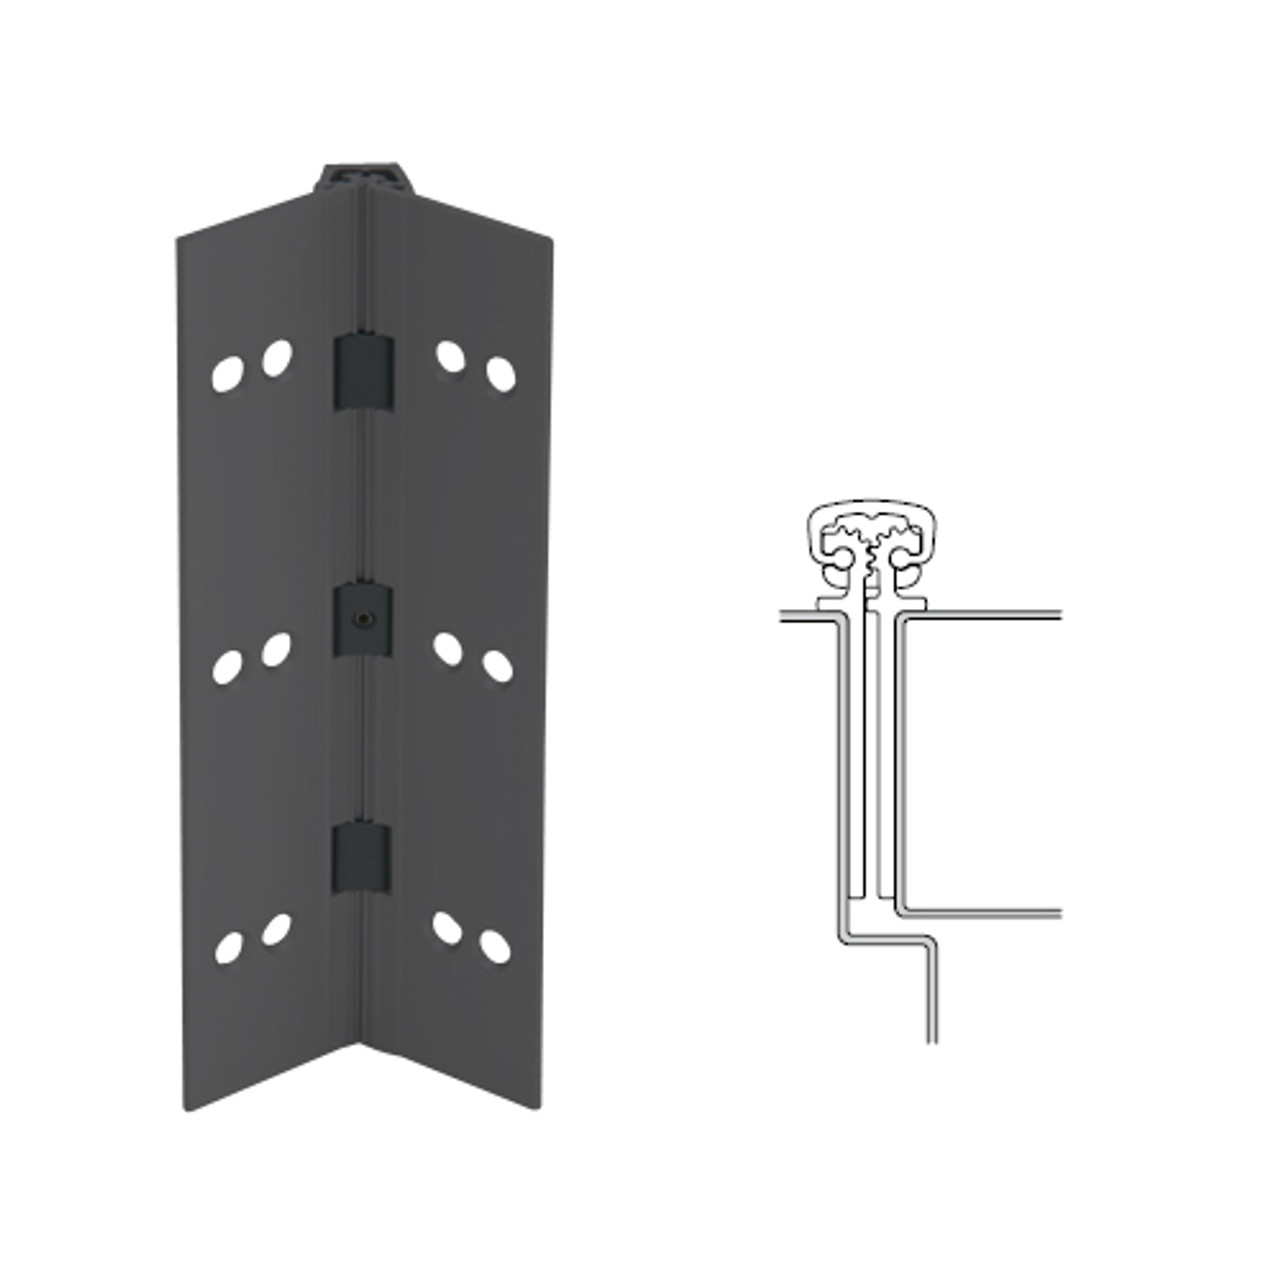 027XY-315AN-120-SECHM IVES Full Mortise Continuous Geared Hinges with Security Screws - Hex Pin Drive in Anodized Black